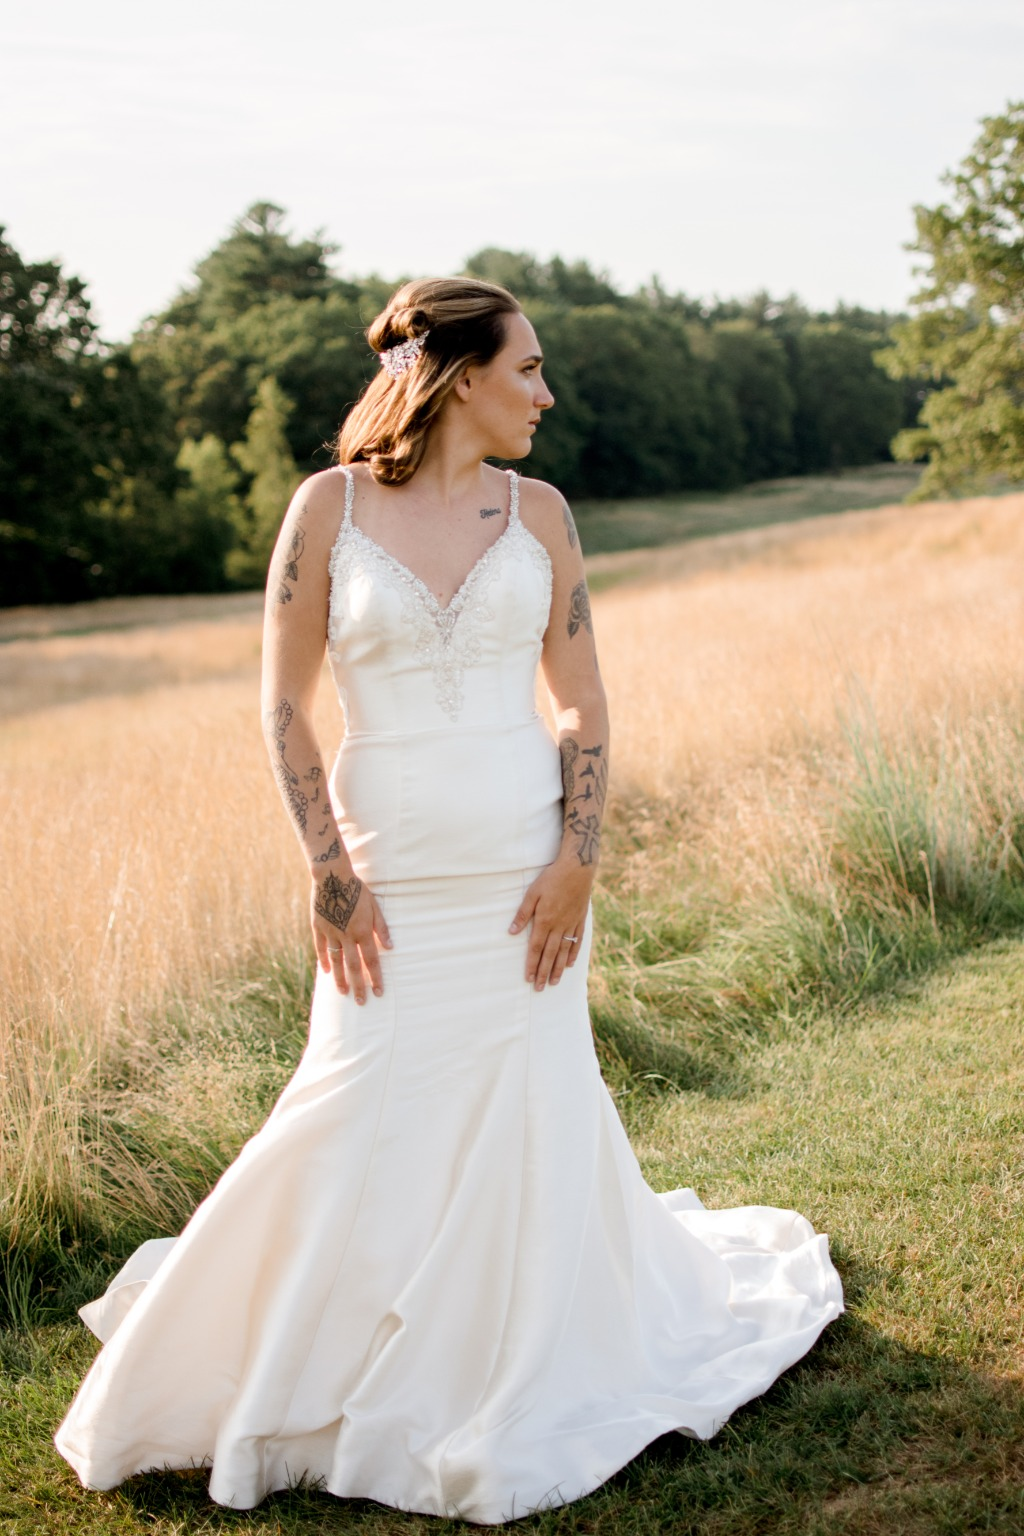 Gorgeous bride in a silk wedding dress at the New Haven Country Club in Connecticut. Summer wedding bridal portrait inspiration.